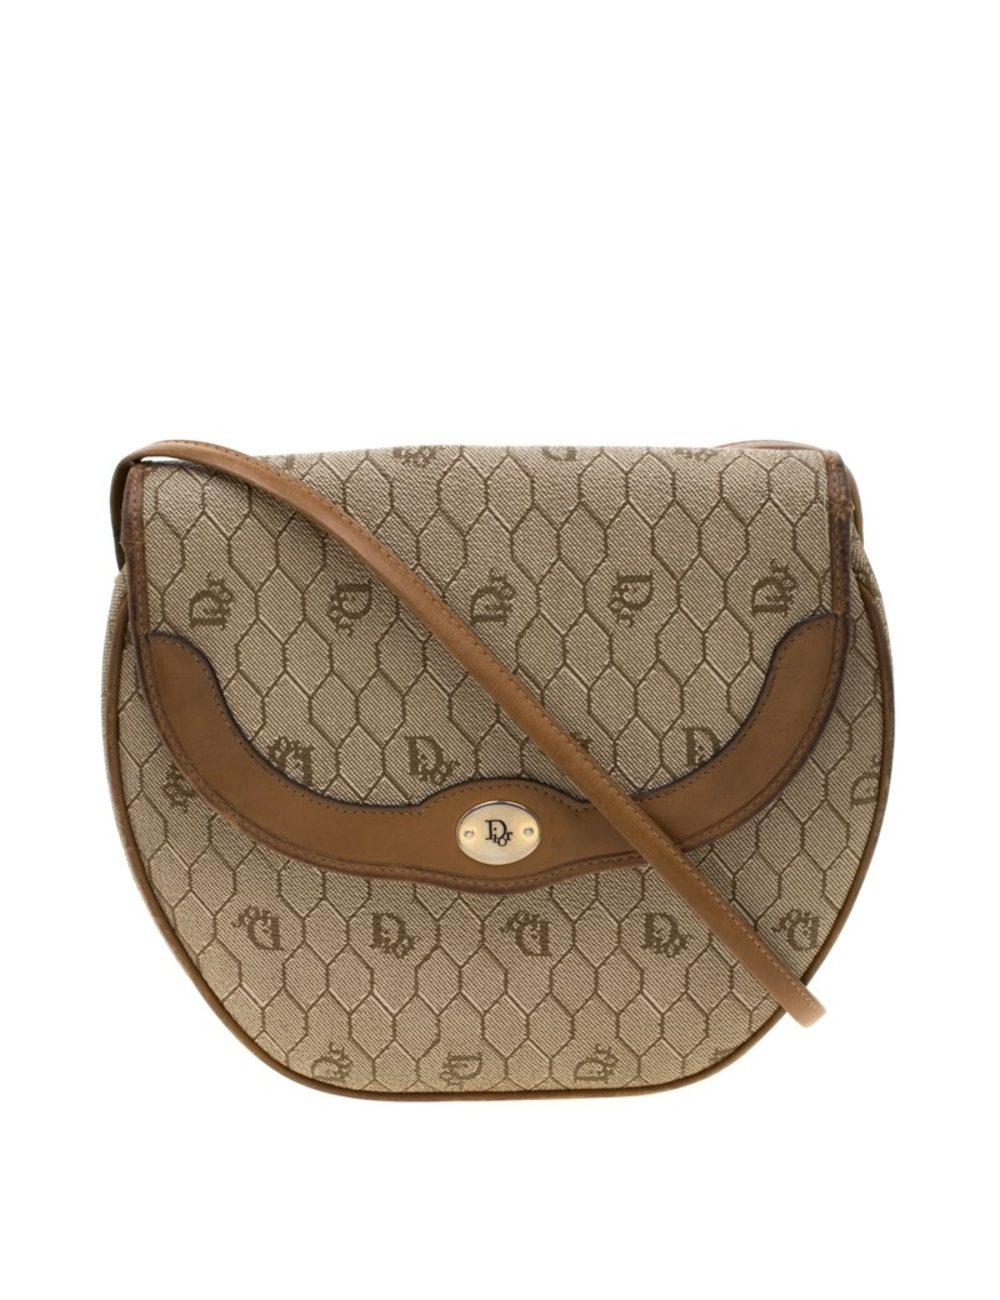 This bag is one such piece that will add sparks of luxury to your closet. This Dior creation is craf